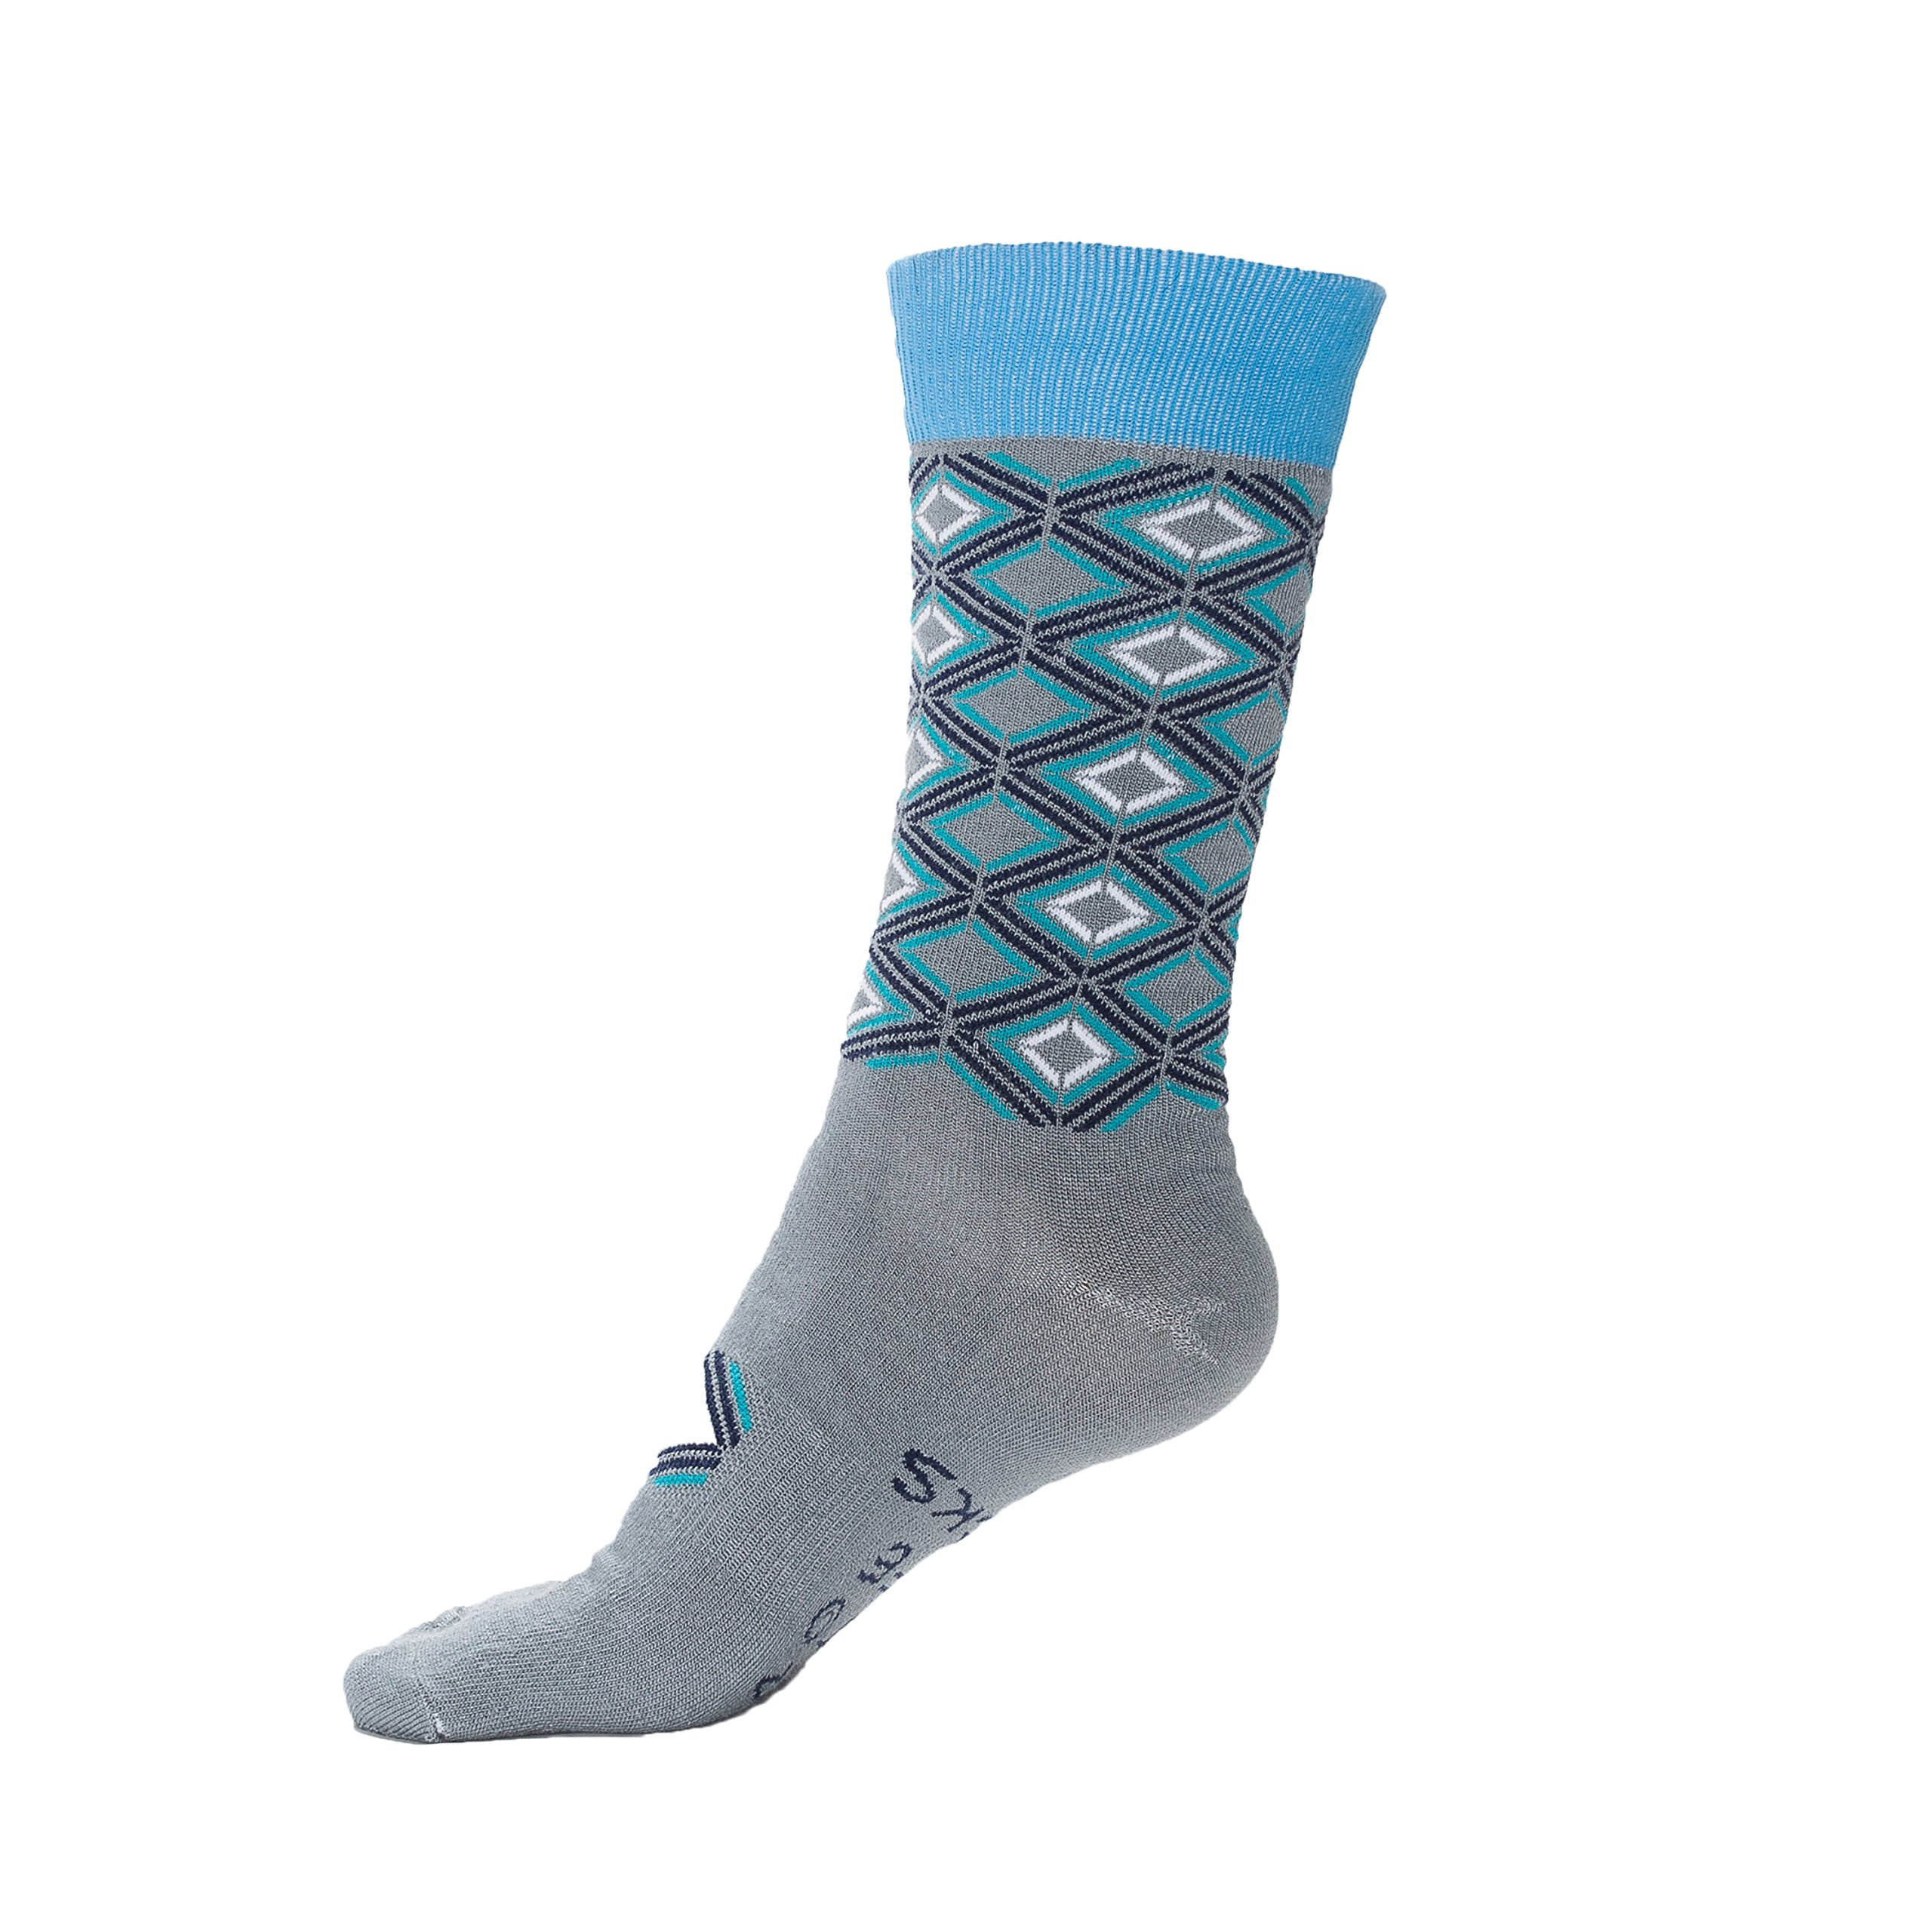 Men's Socks Courage by Step Into Life Funky Stylish Geometric Patterned Business Casual Fun Combed Cotton